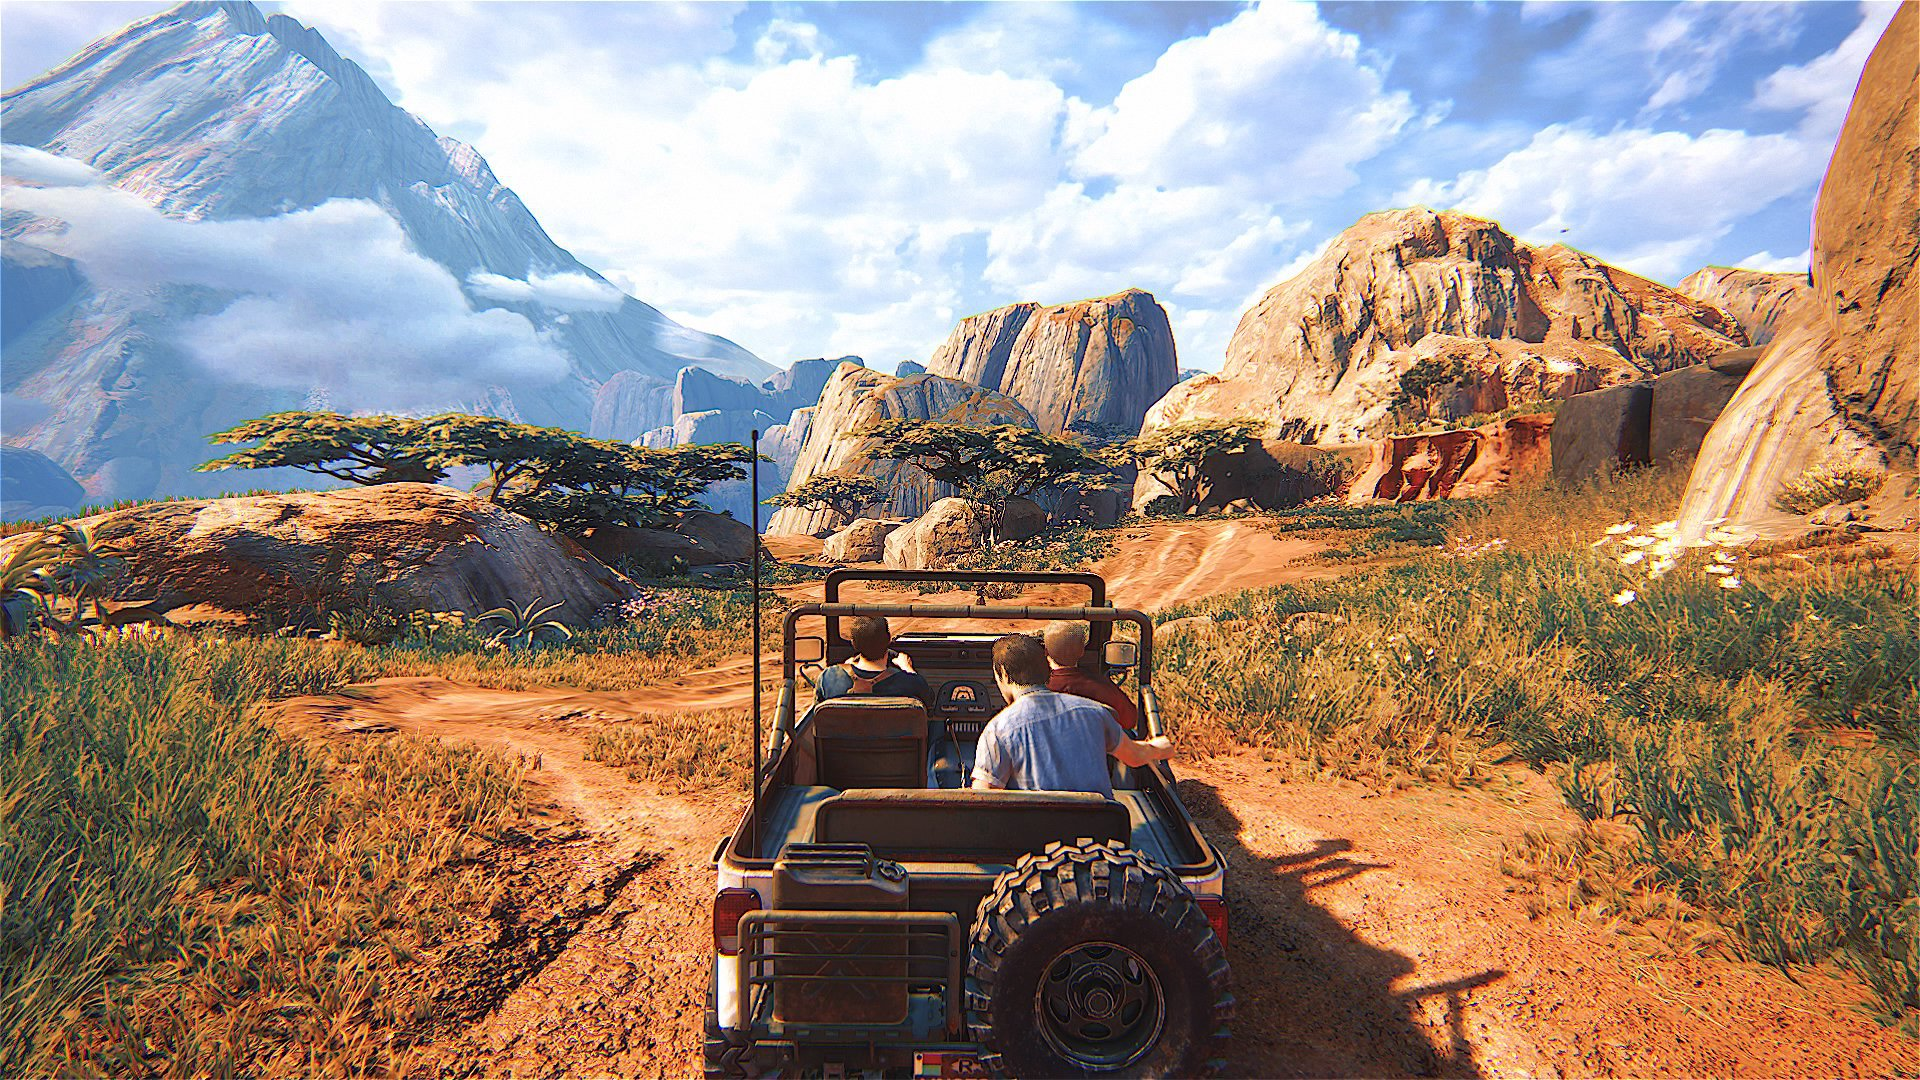 uncharted-4-photo-mode-filters-6